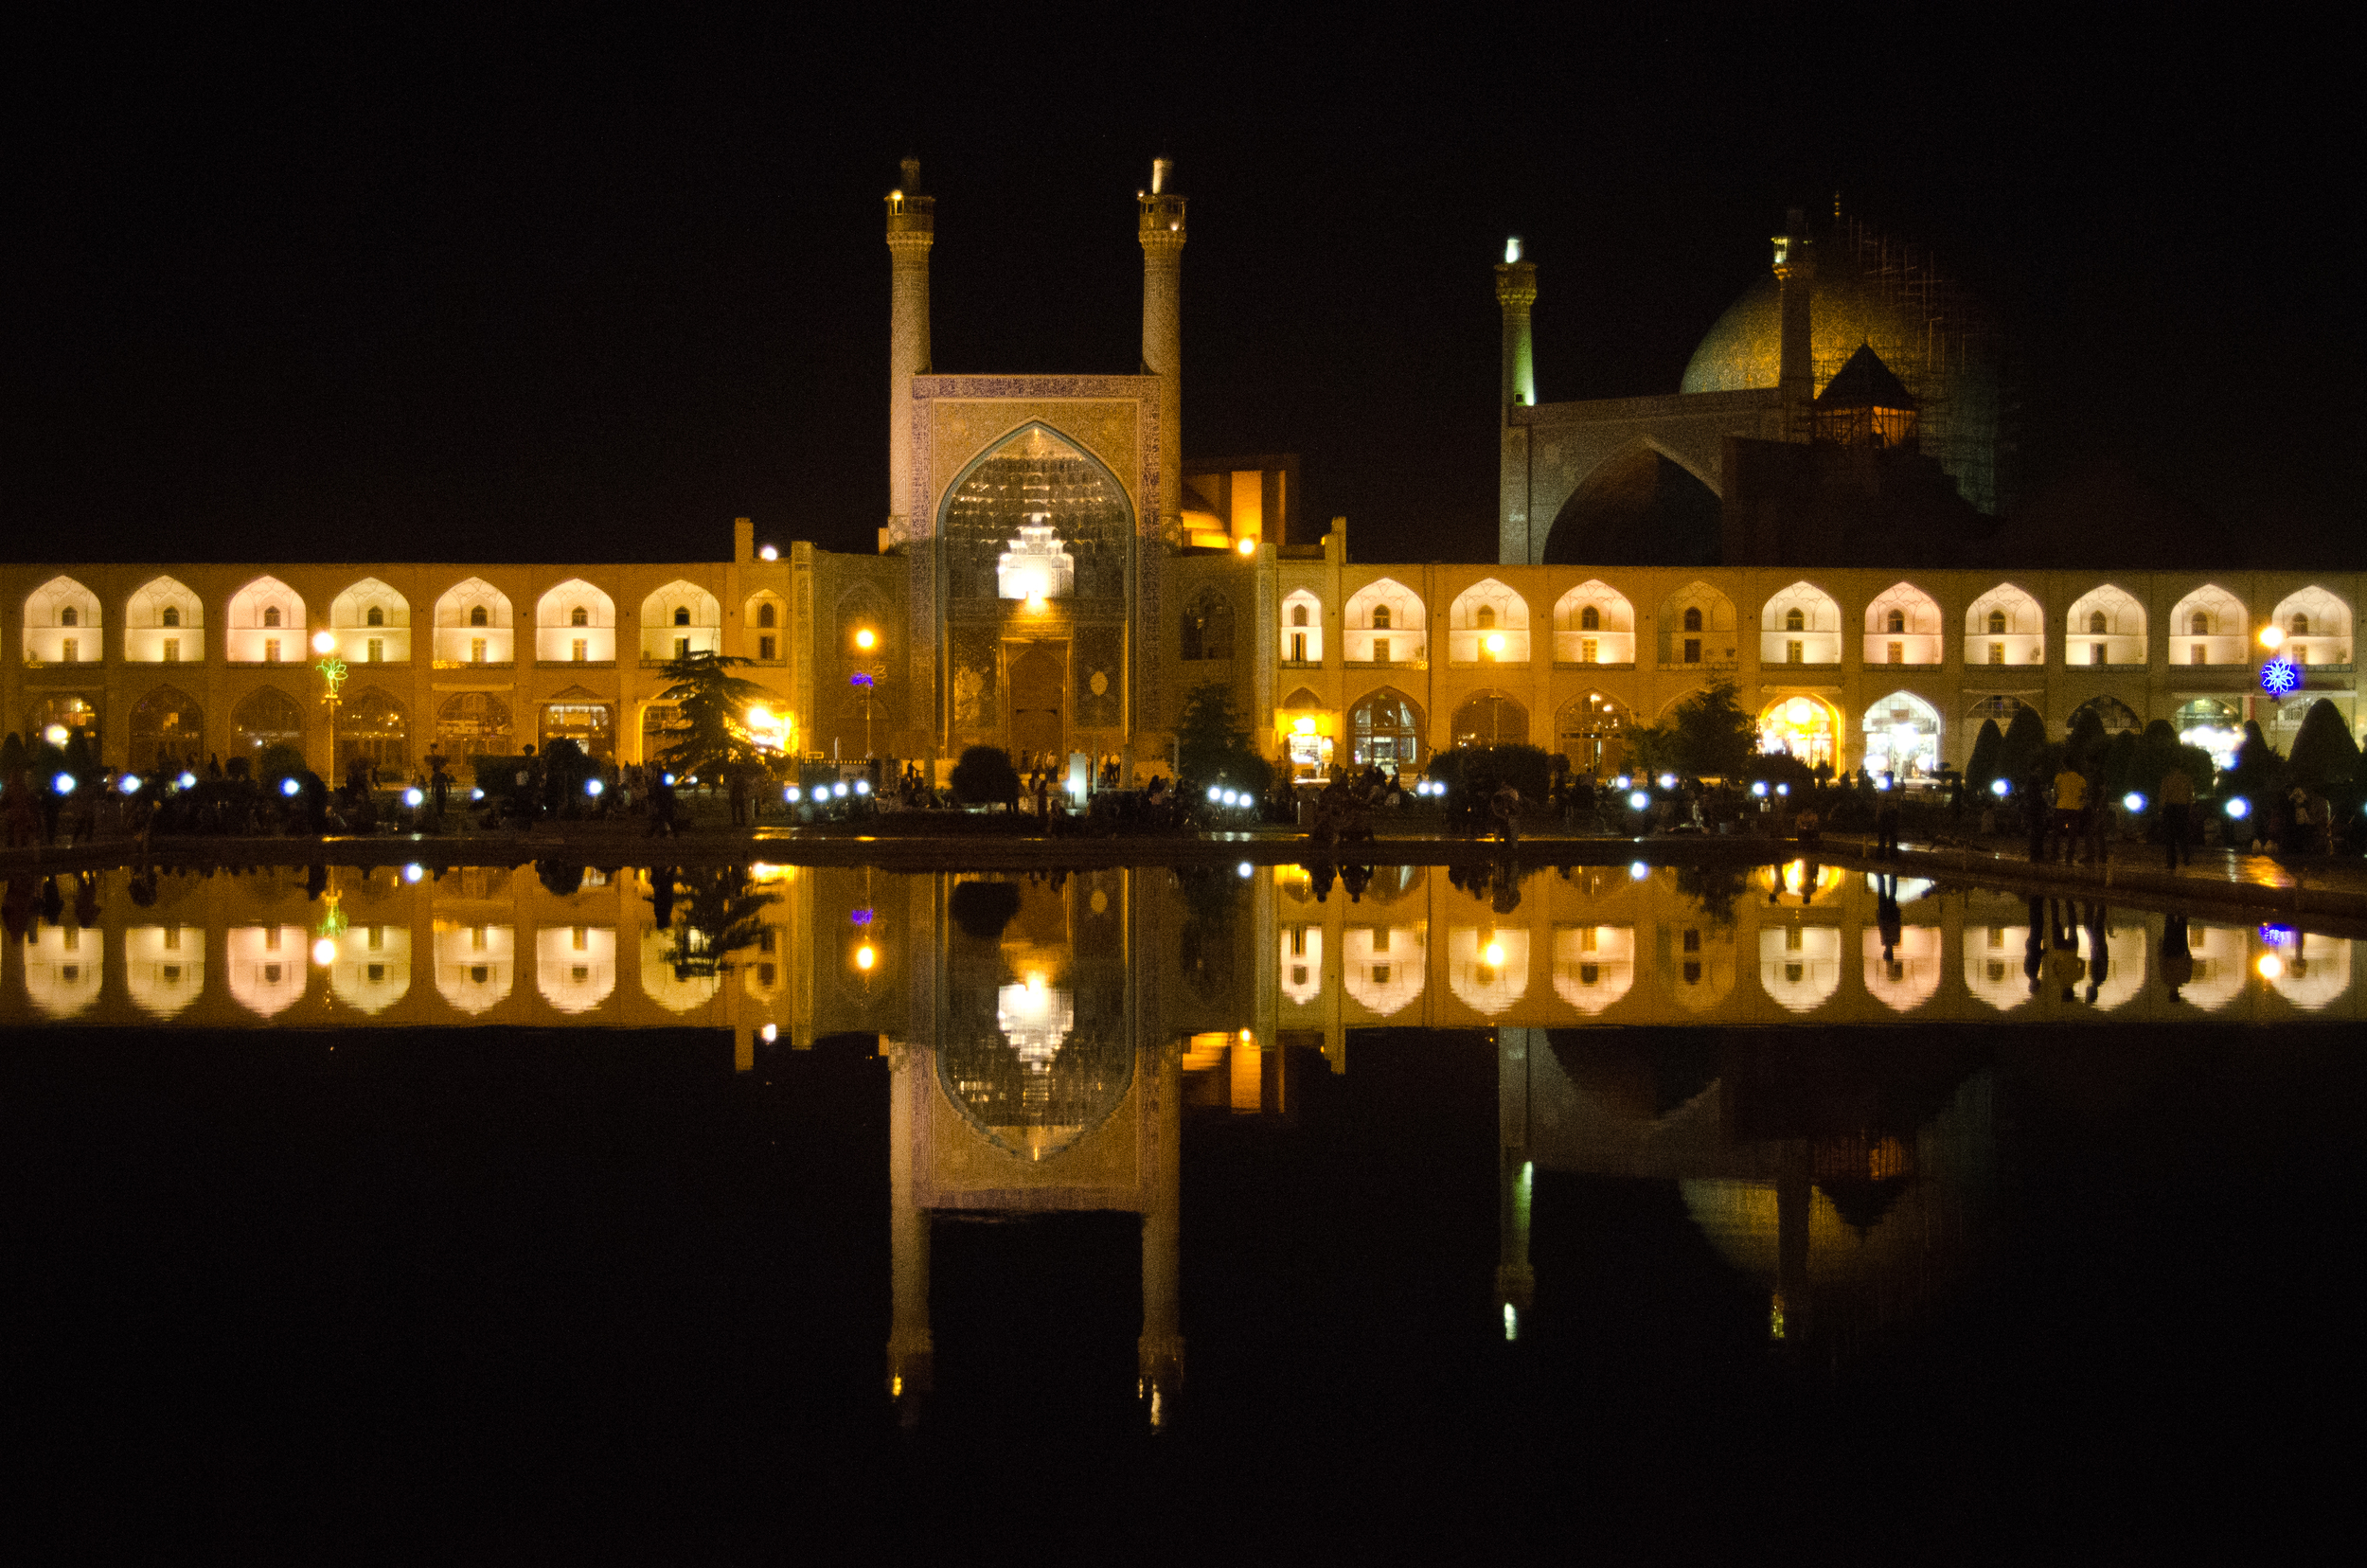 Shah Mosque on the Naghsh-i Jahan Square in Isfahan